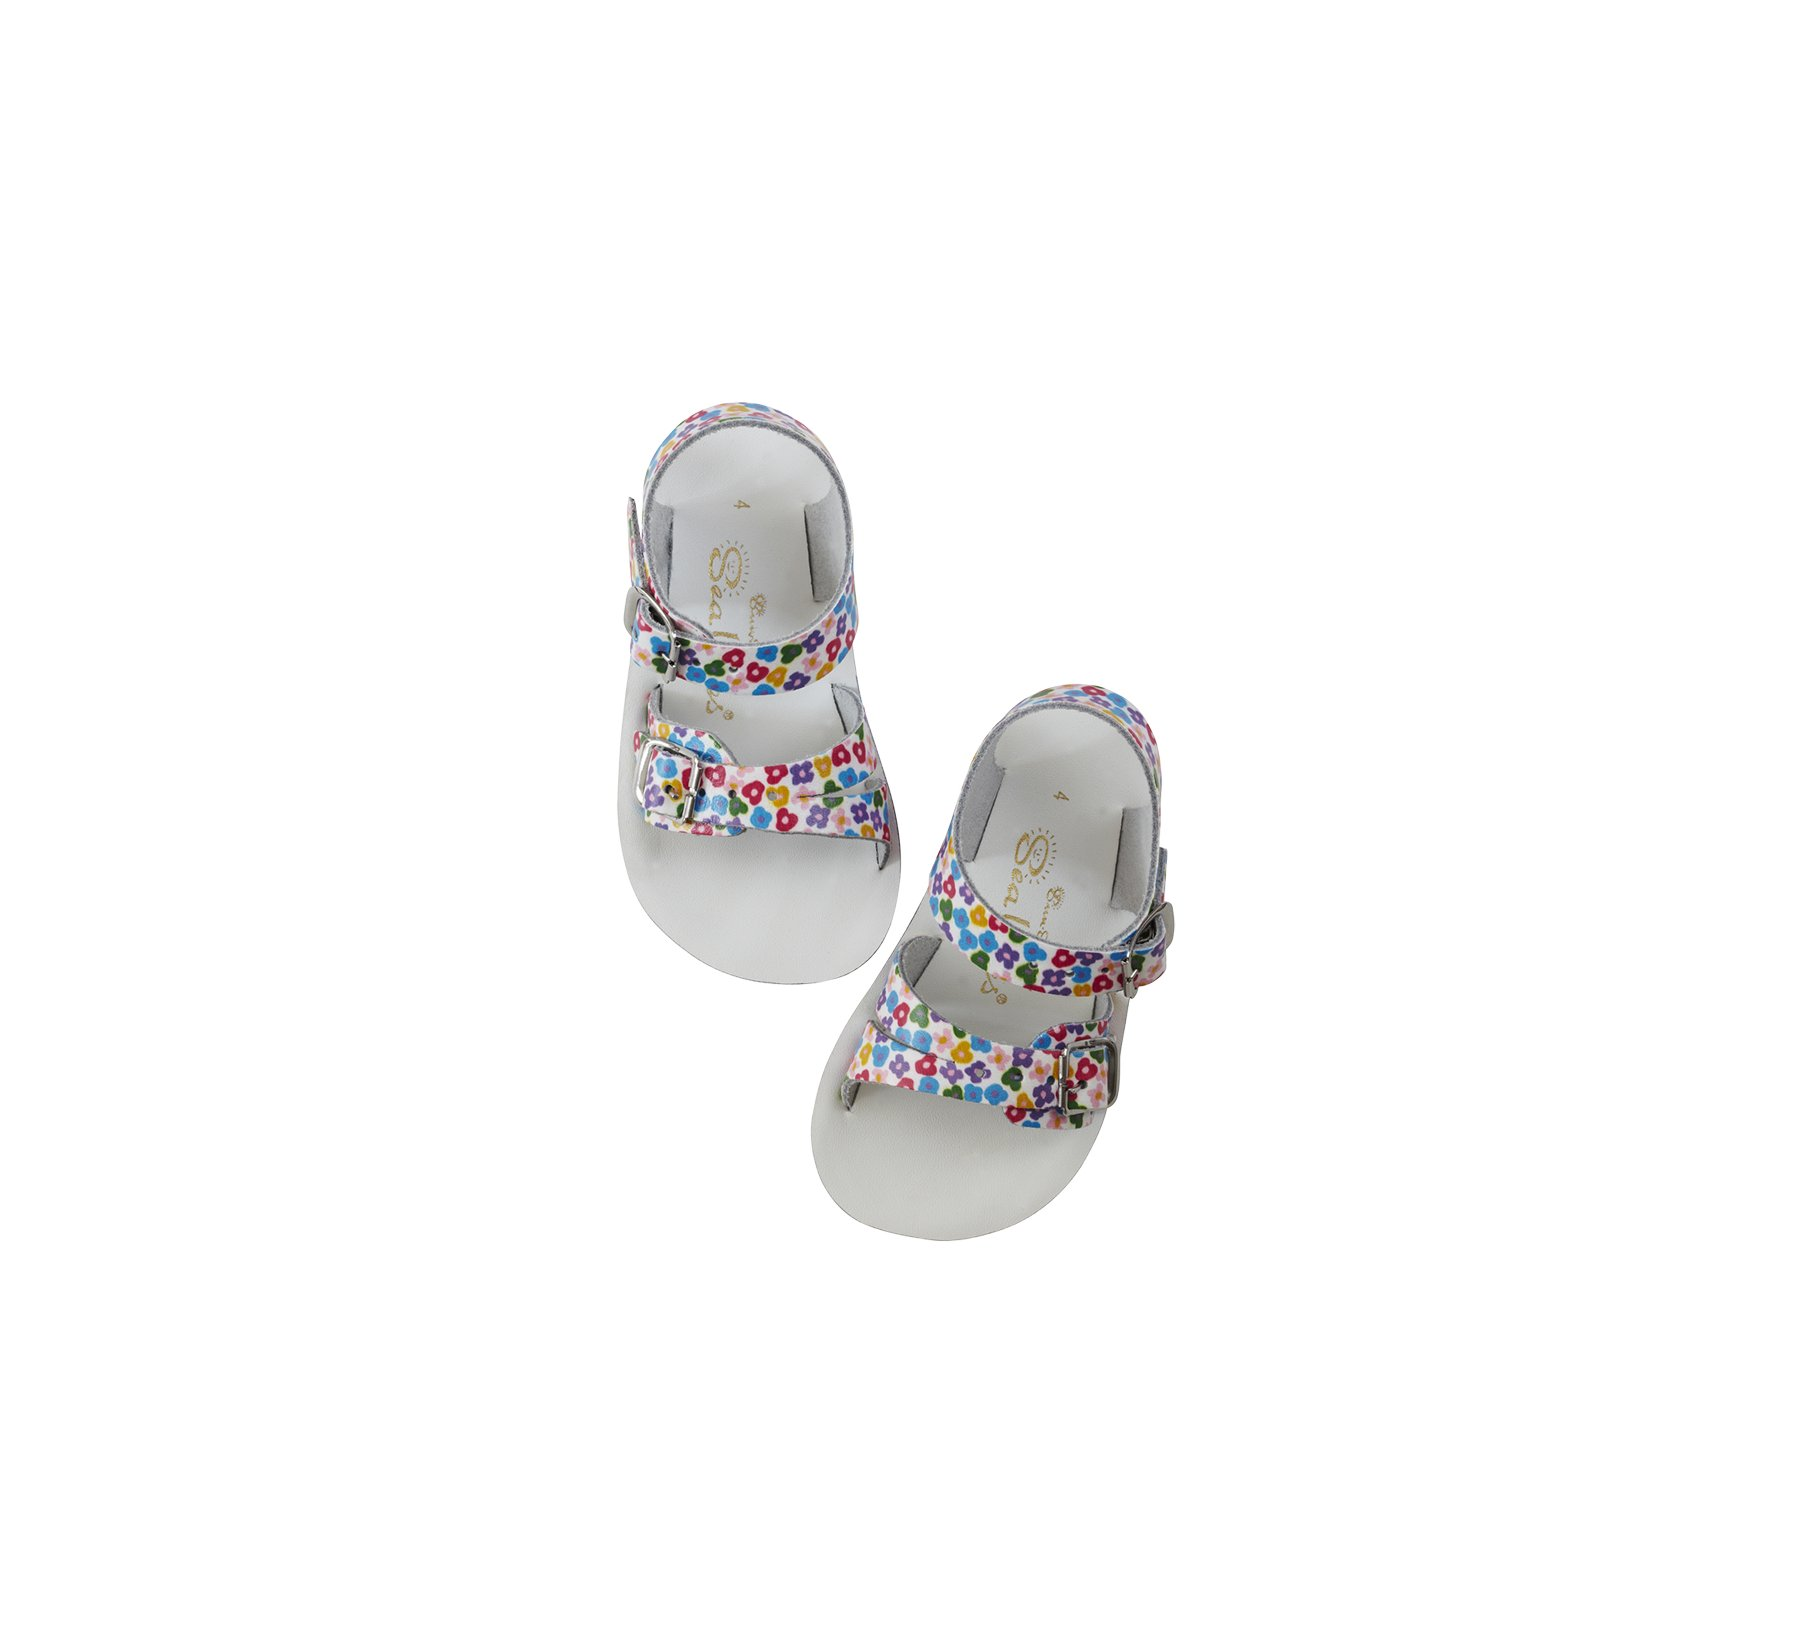 Seawee Floral - Salt Water Sandals